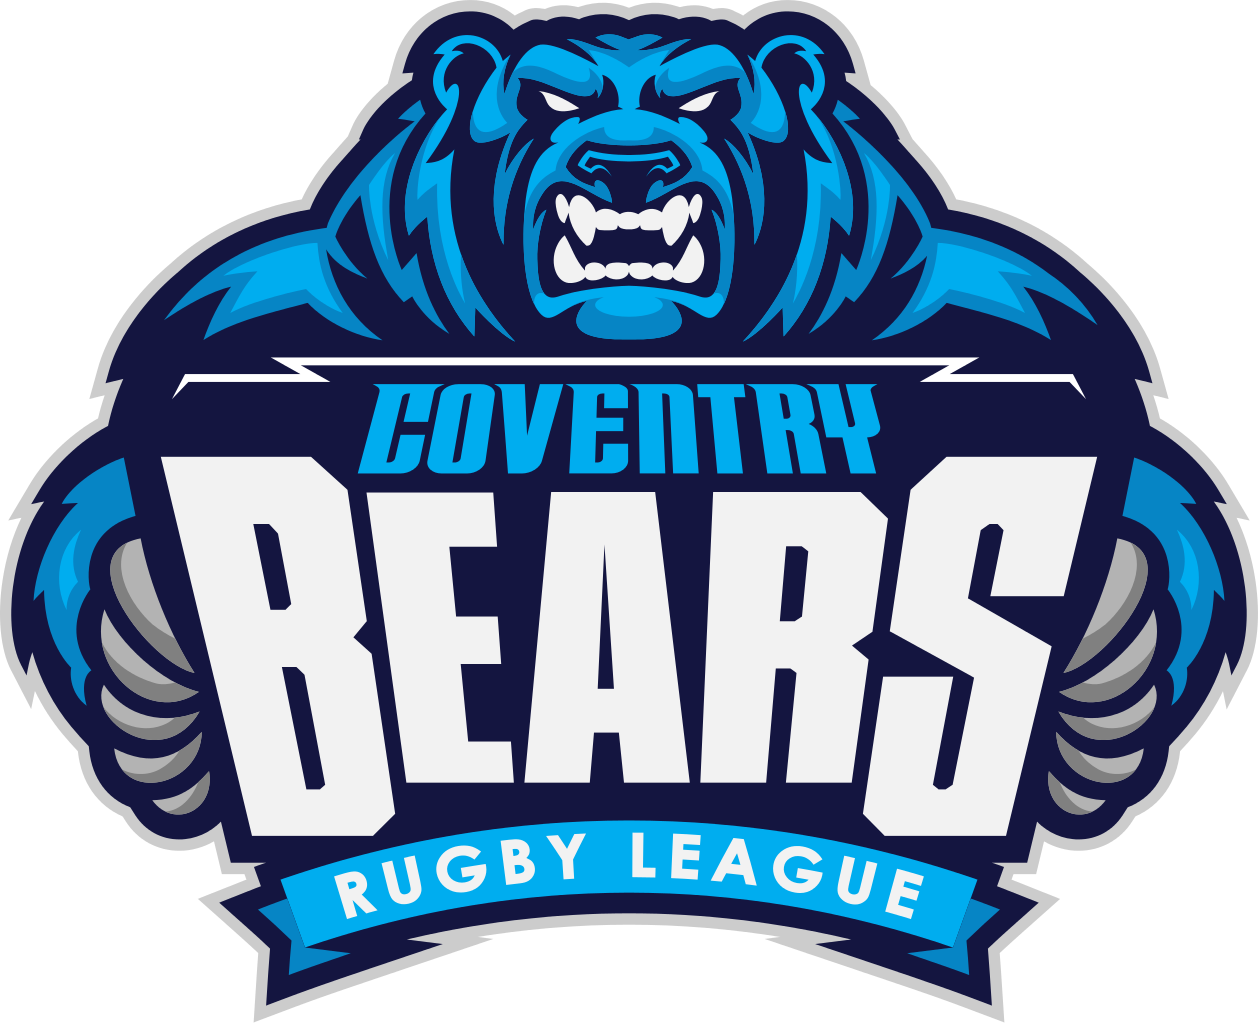 File:Coventry Bears logo.svg - Wikipedia, the free encyclopedia